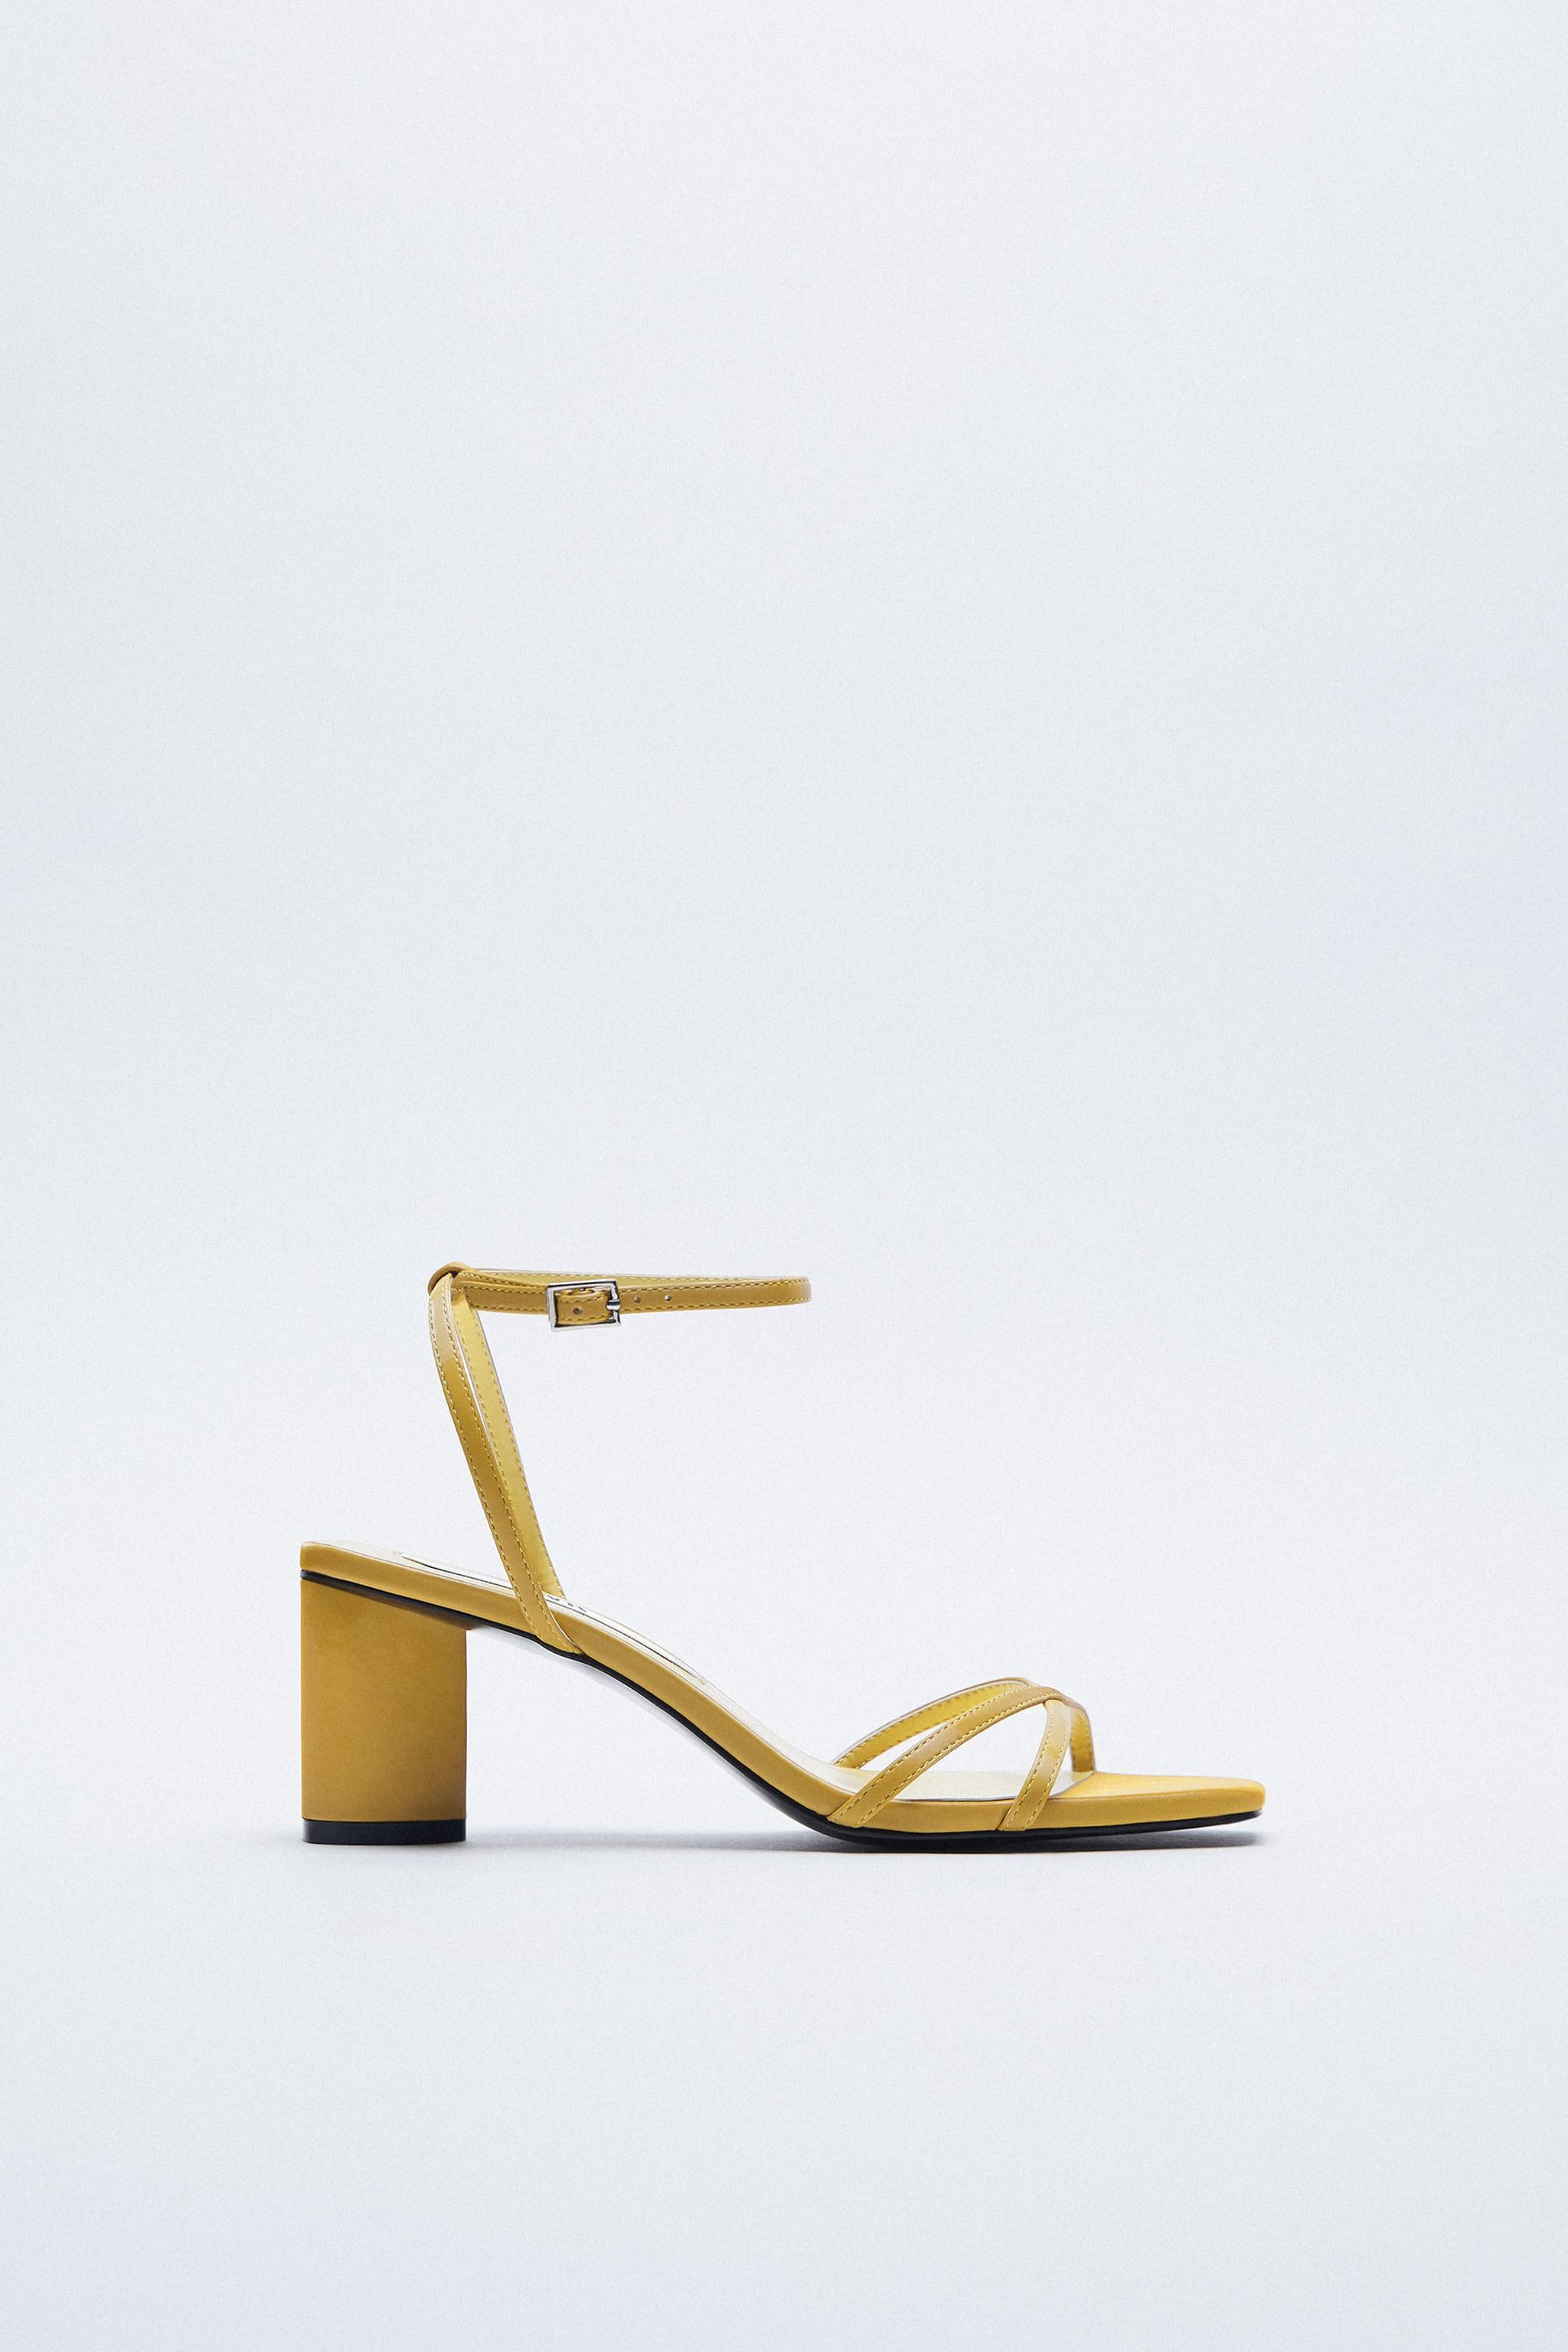 HEELED SANDALS WITH THIN STRAPS